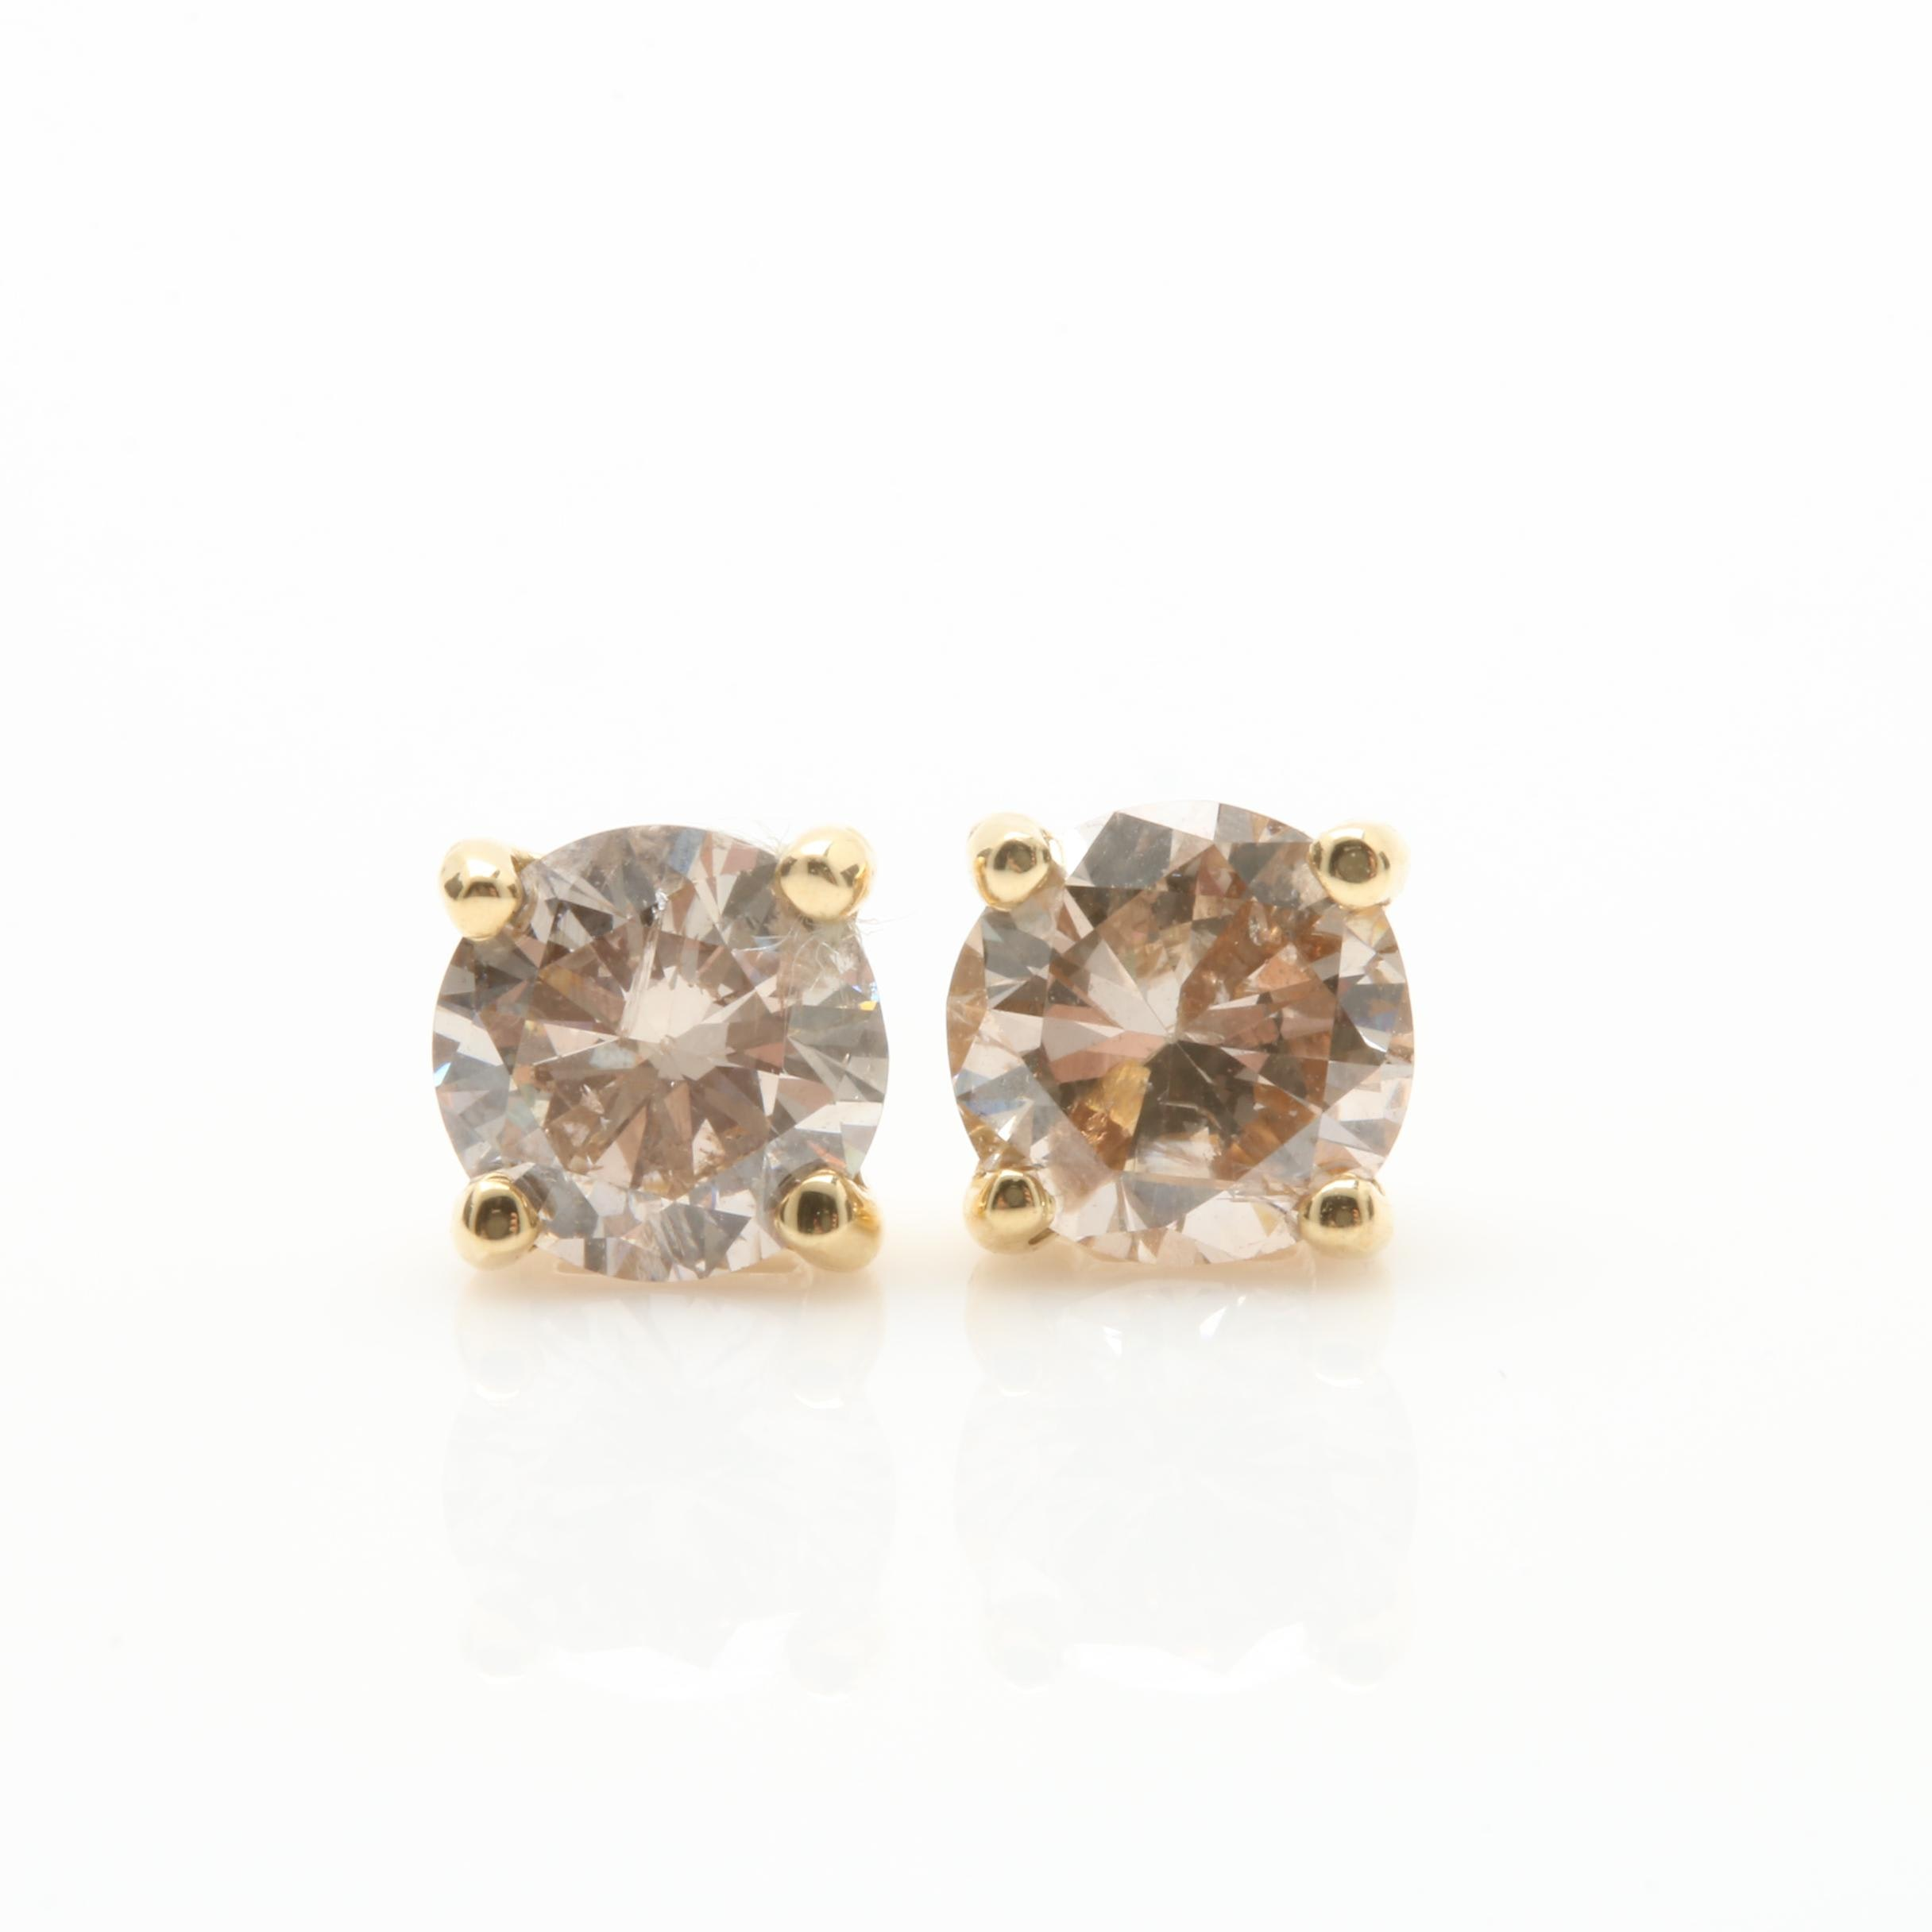 14K Yellow Gold 1.02 CTW Diamond Stud Earrings